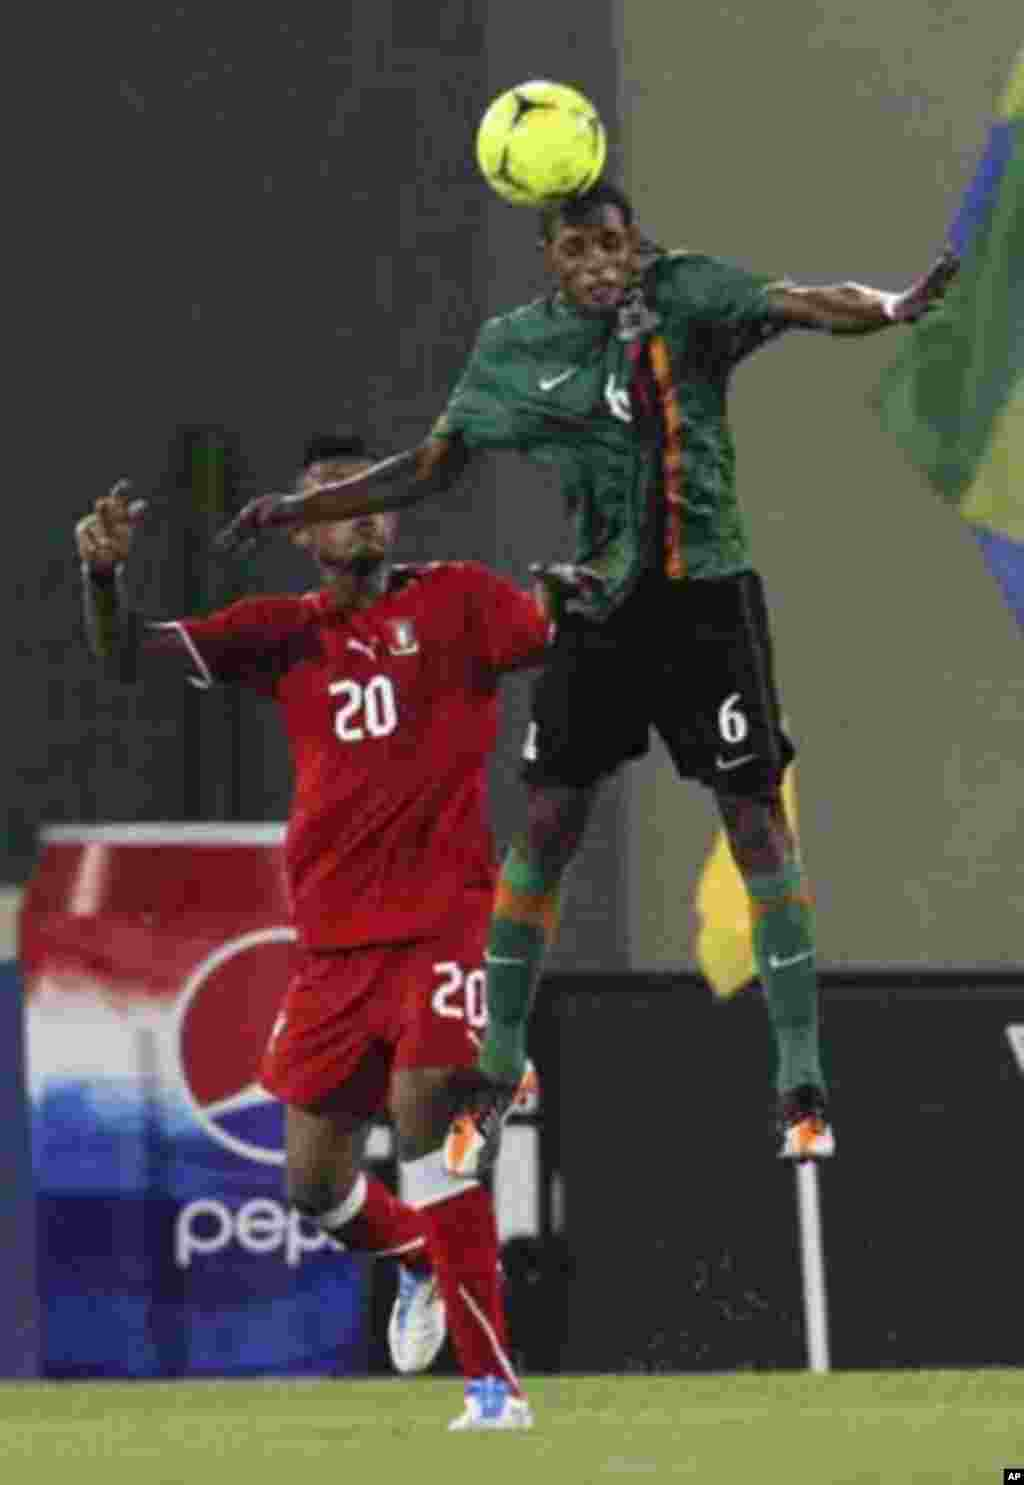 Bladmir Ekoedo (L) of Equatorial Guinea fights for the ball with Davies Nkausu of Zambia during their African Nations Cup soccer match in Malabo January 29, 2012.